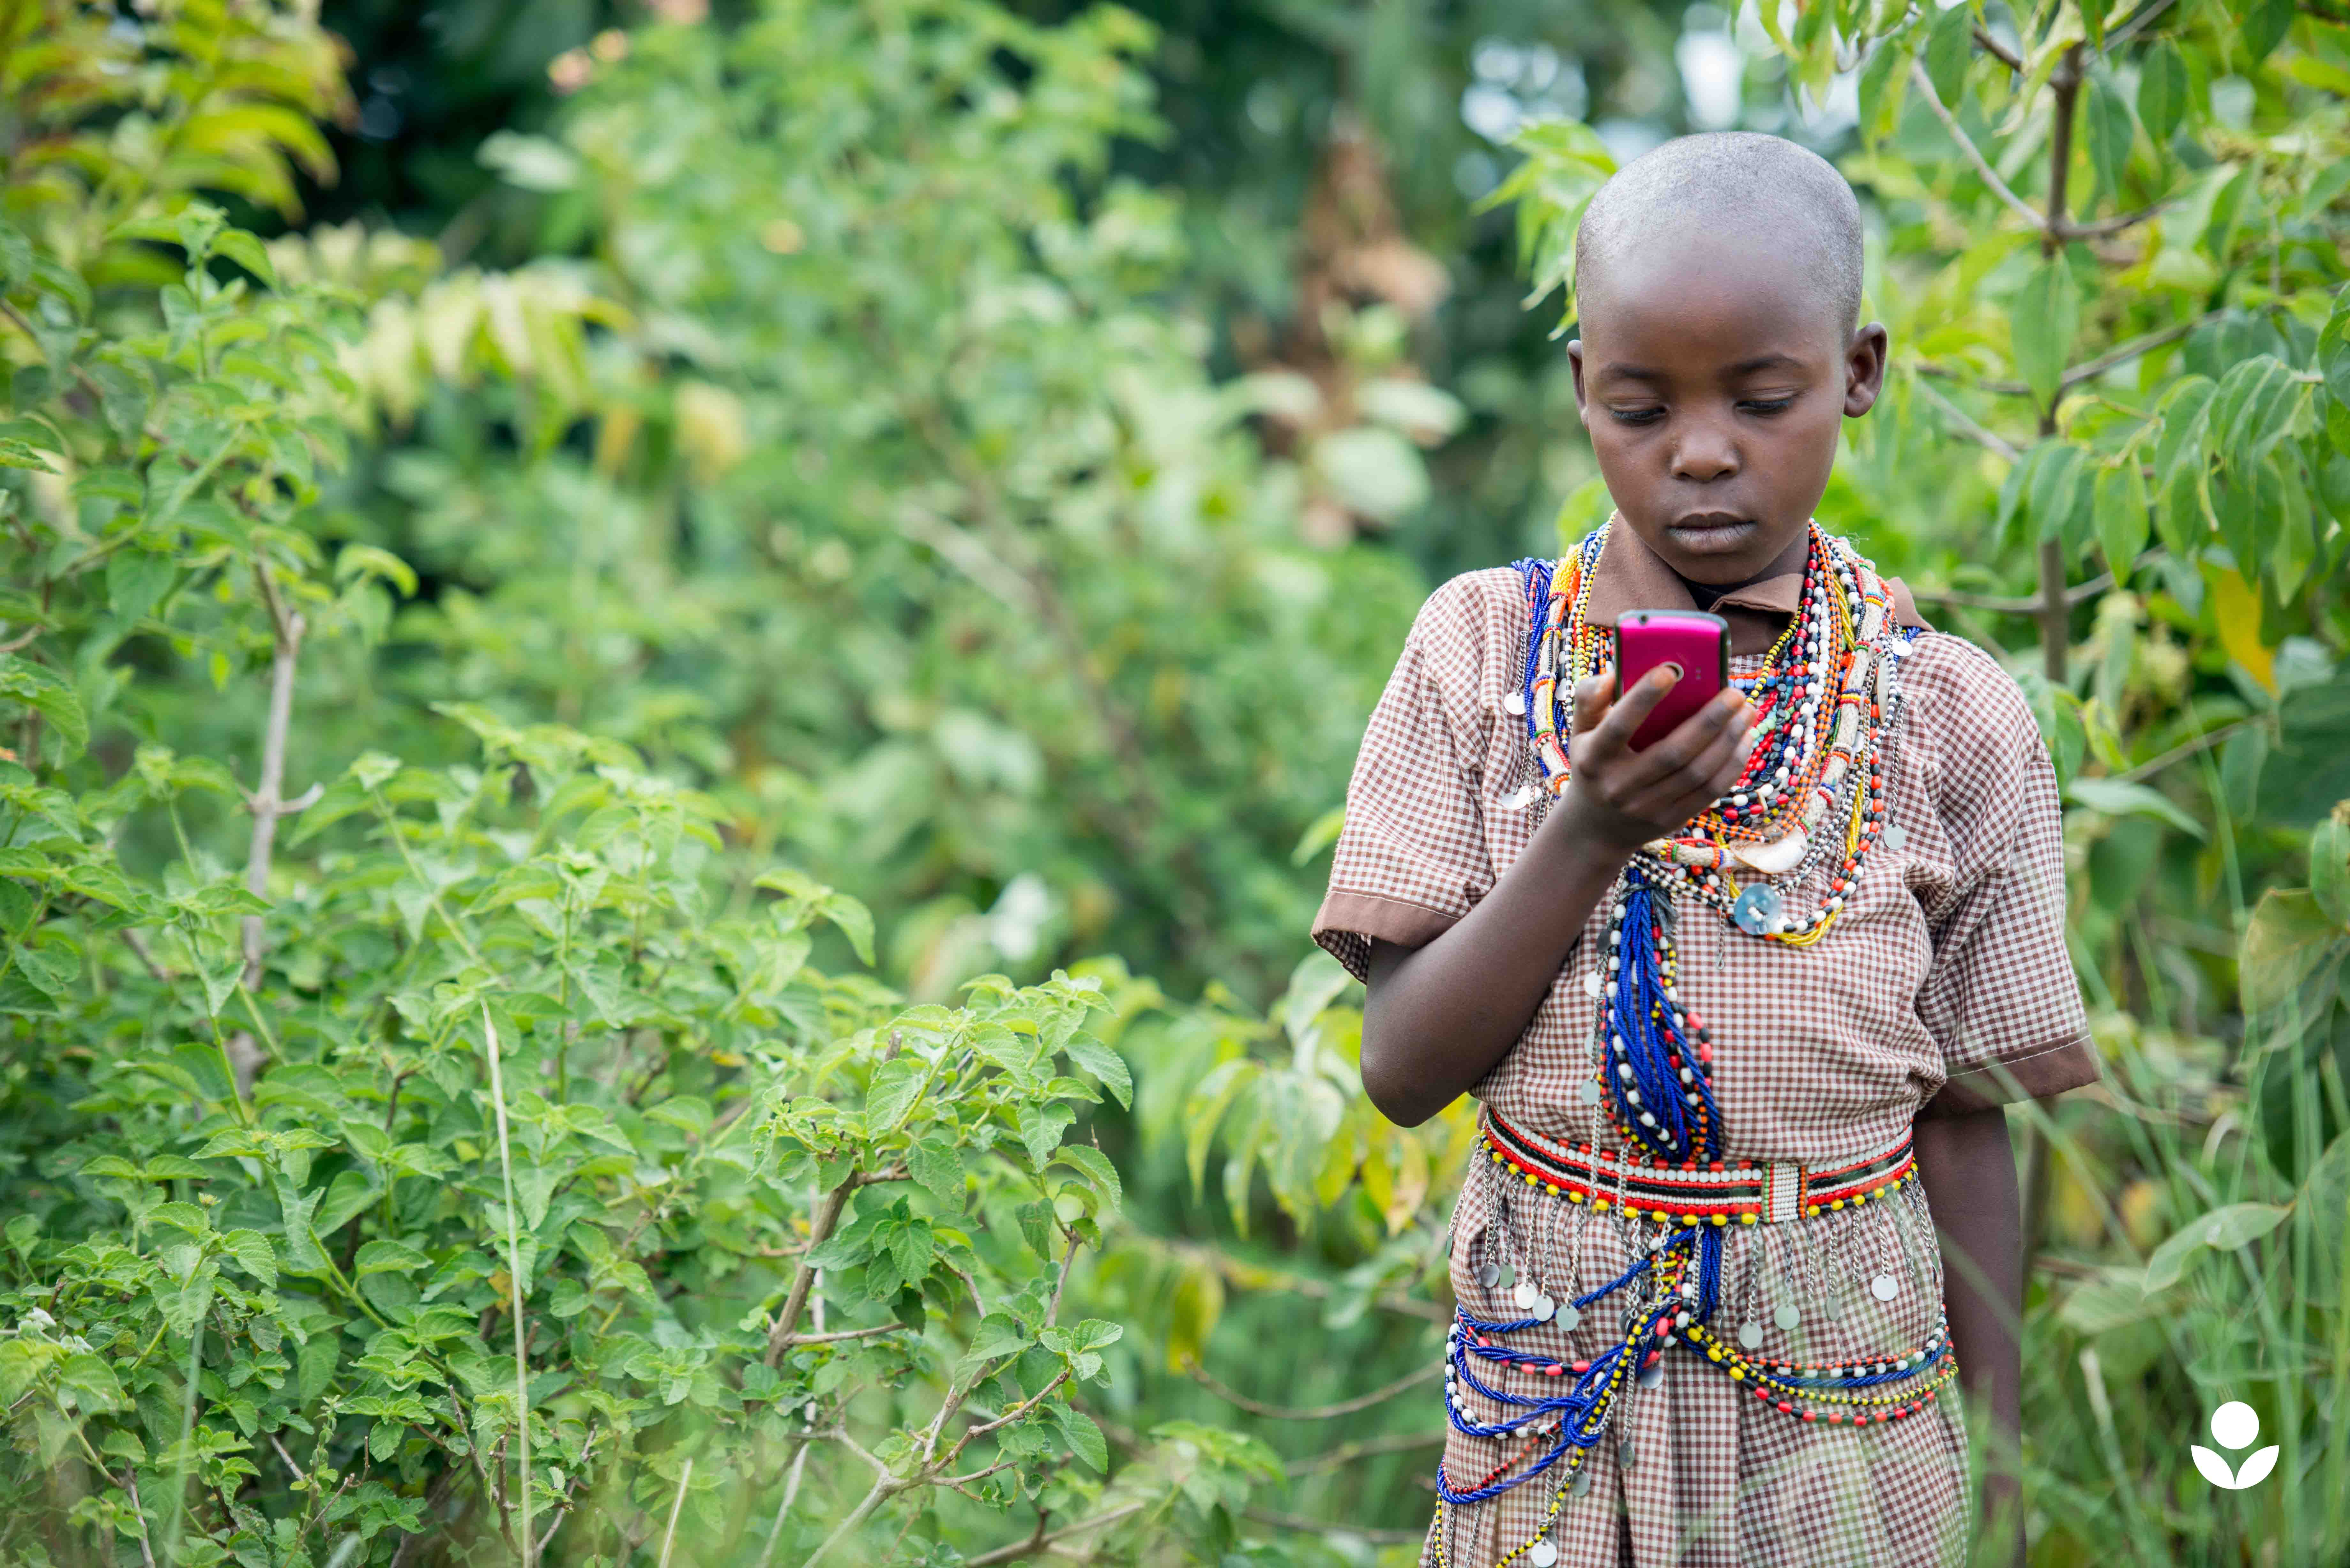 Reading on mobile phones in Africa